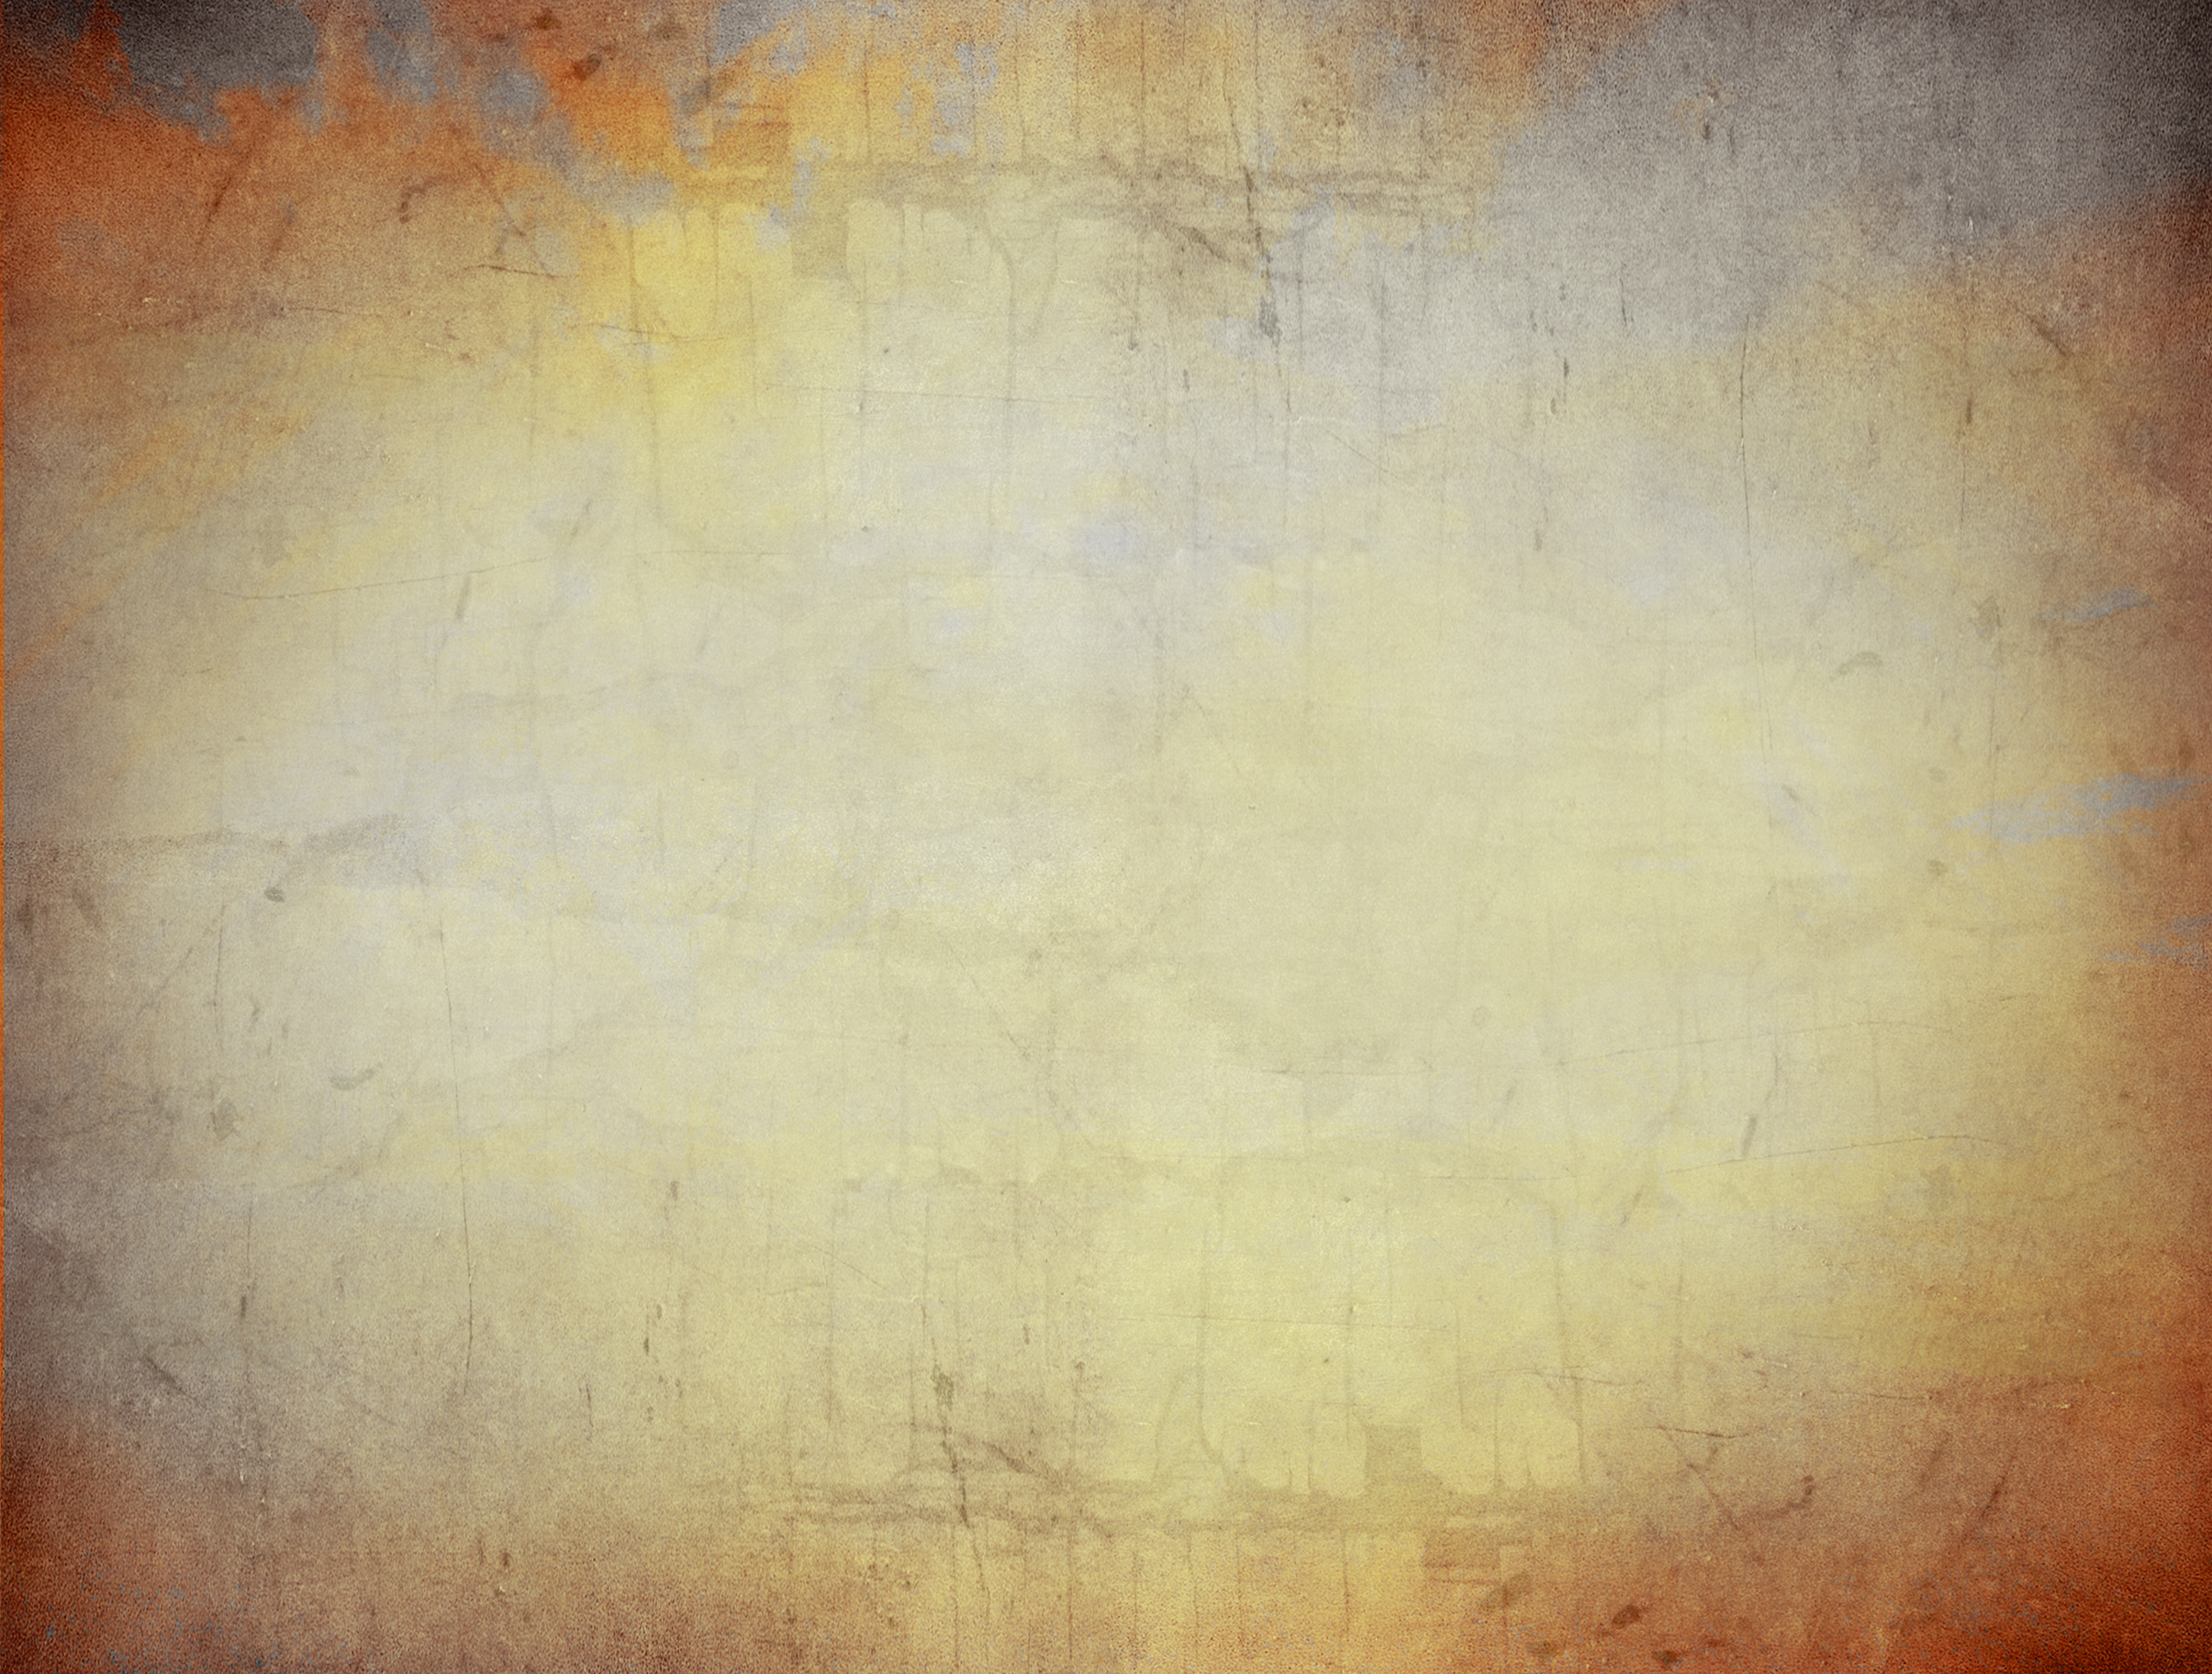 Old paper grunge texture background - Warm colors, Abstract, Modern, Parchment, Paper, HQ Photo